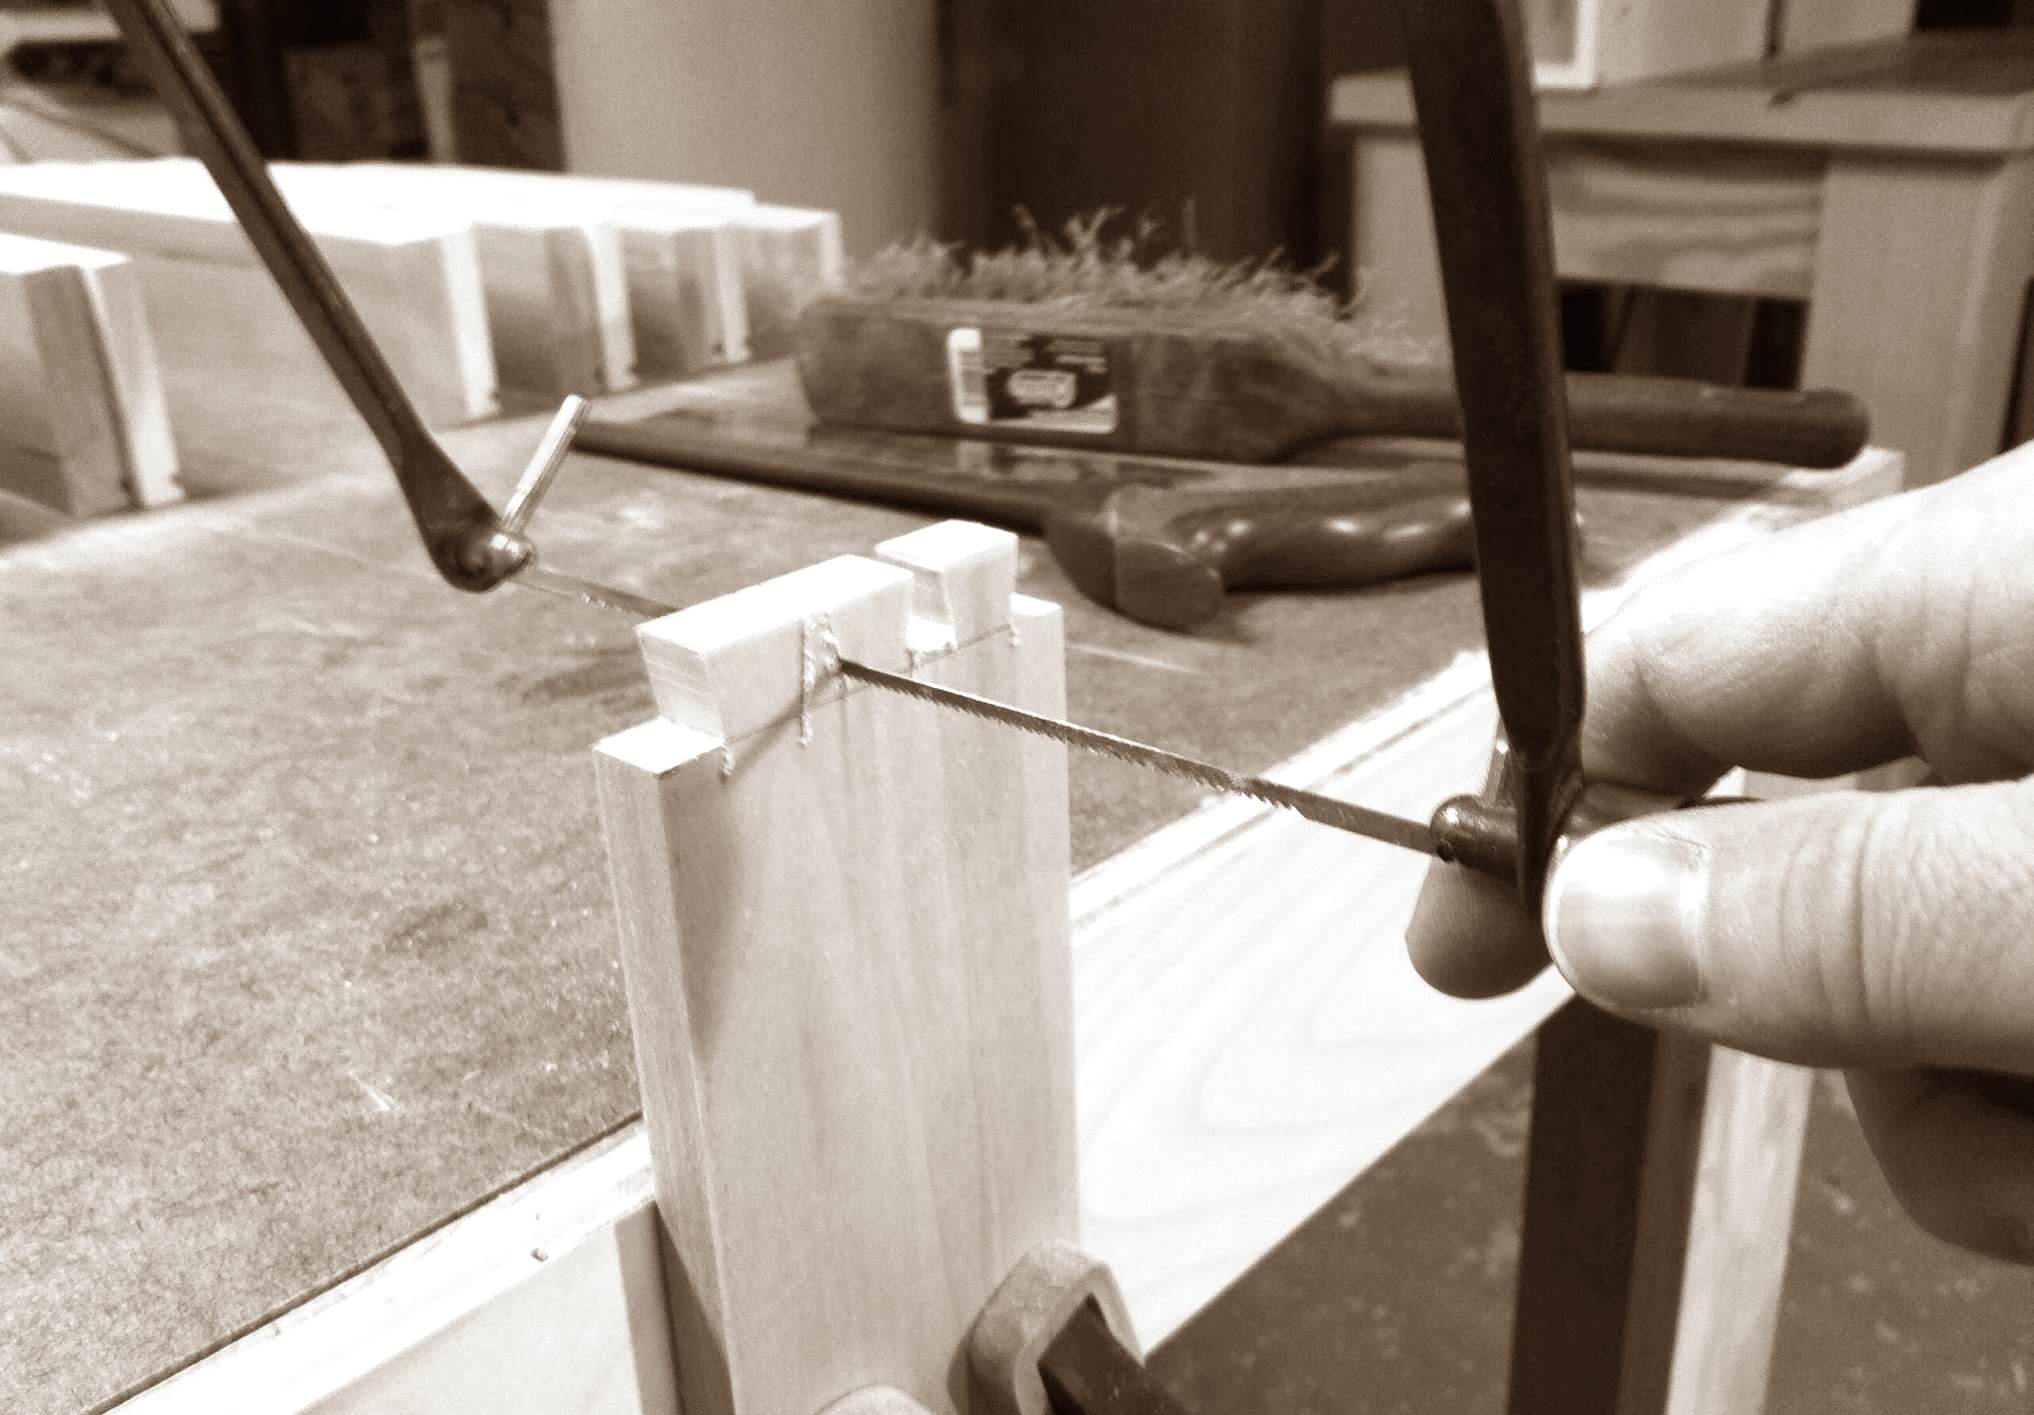 Using coping saw to cut waste between tails, staying just off the lines